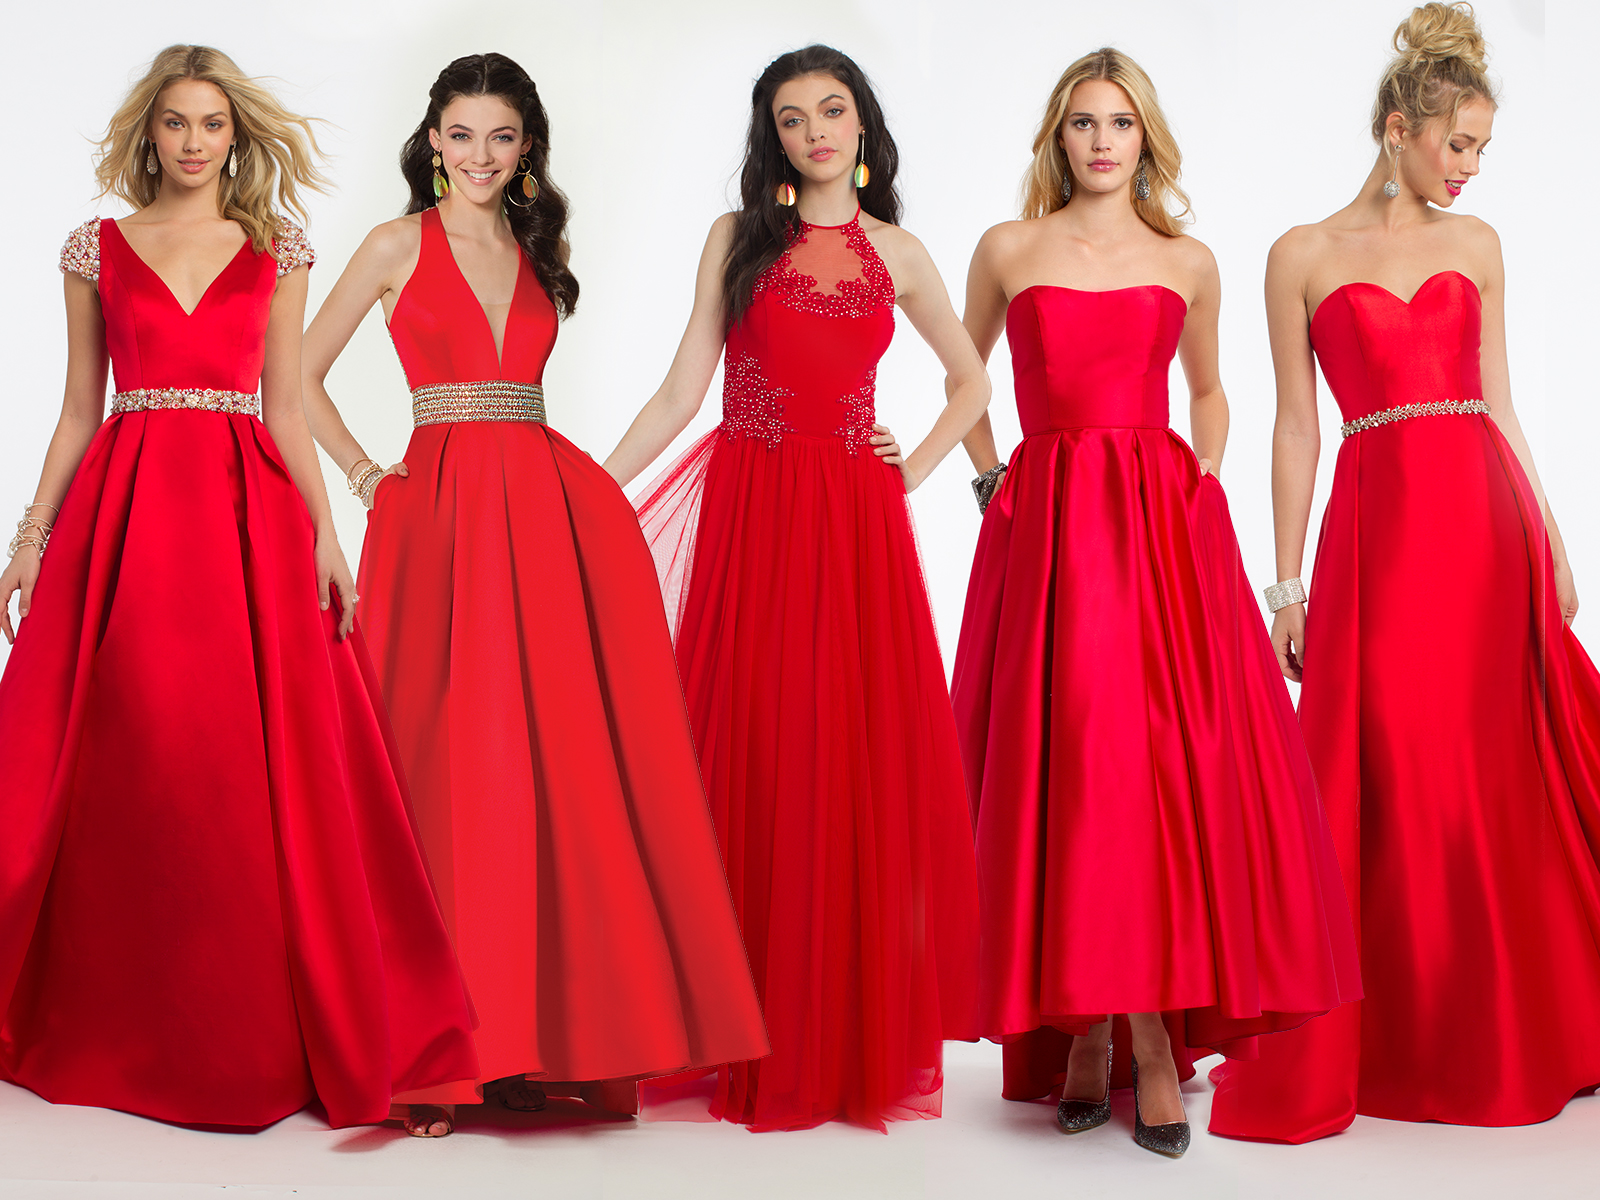 Red Prom Dresses by Camille La Vie